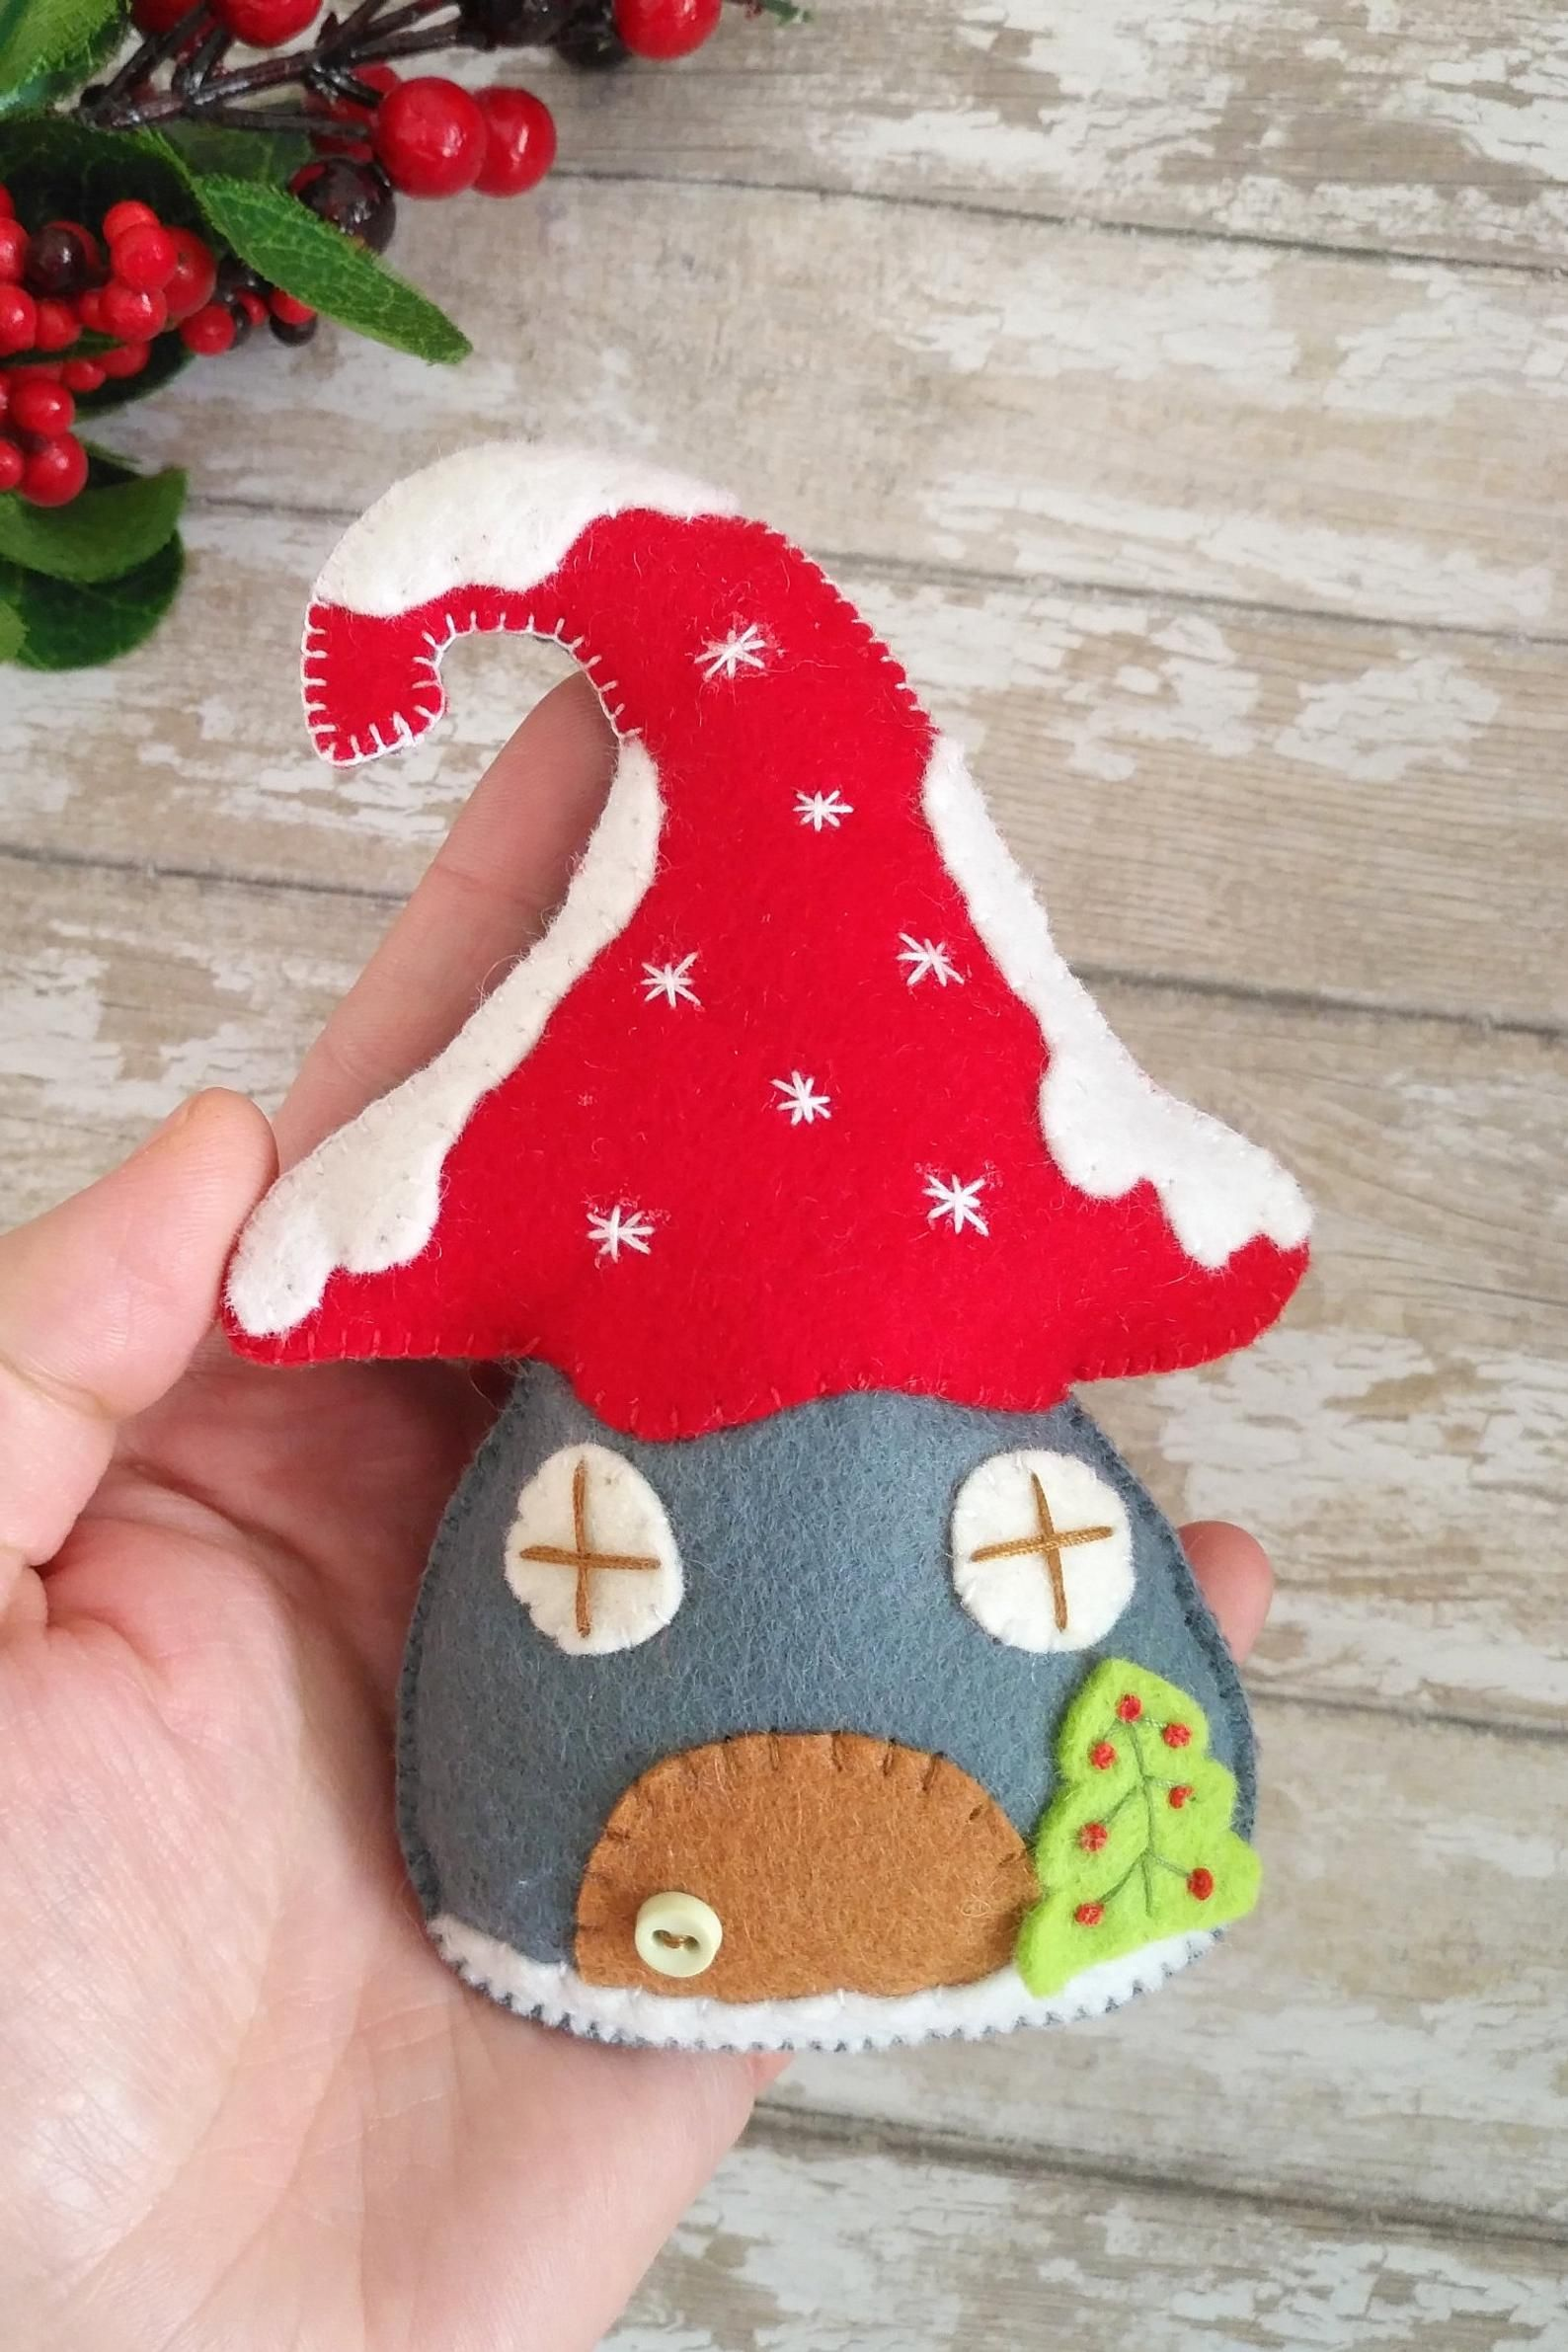 Felt Gnome Ornament Pattern Felt Christmas Ornaments Tomte Swedish Gnome Gnomes Sewing Pattern Christmas Gnomes Pattern Felt Gnome Pdf Decor In 2021 Handmade Felt Ornament Felt Christmas Ornaments Felt Ornaments Patterns